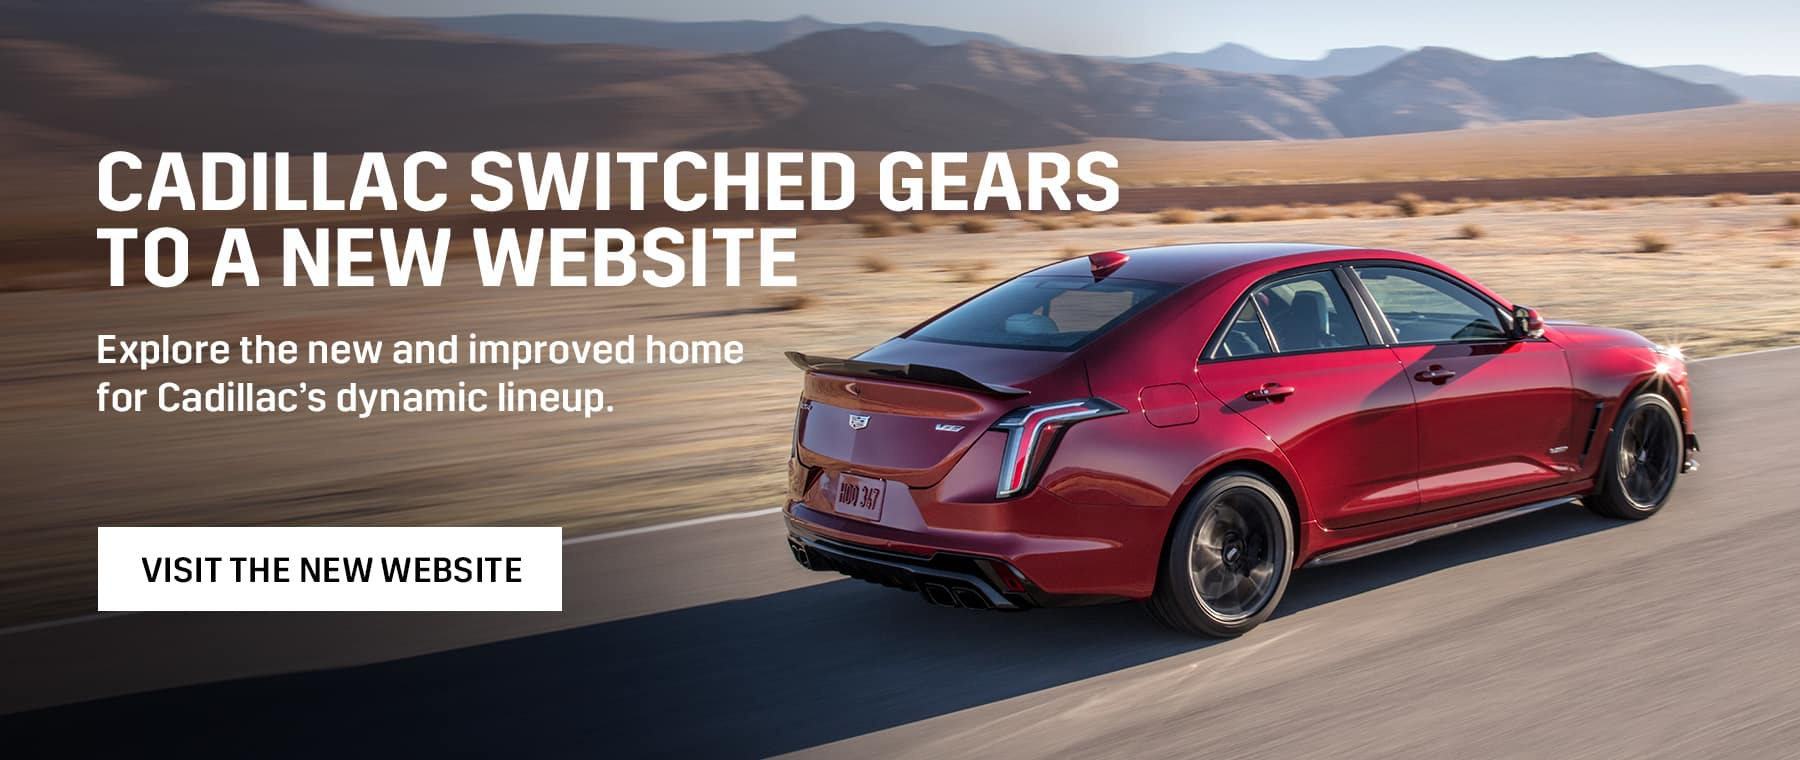 wheaton cadillac website launch desktop